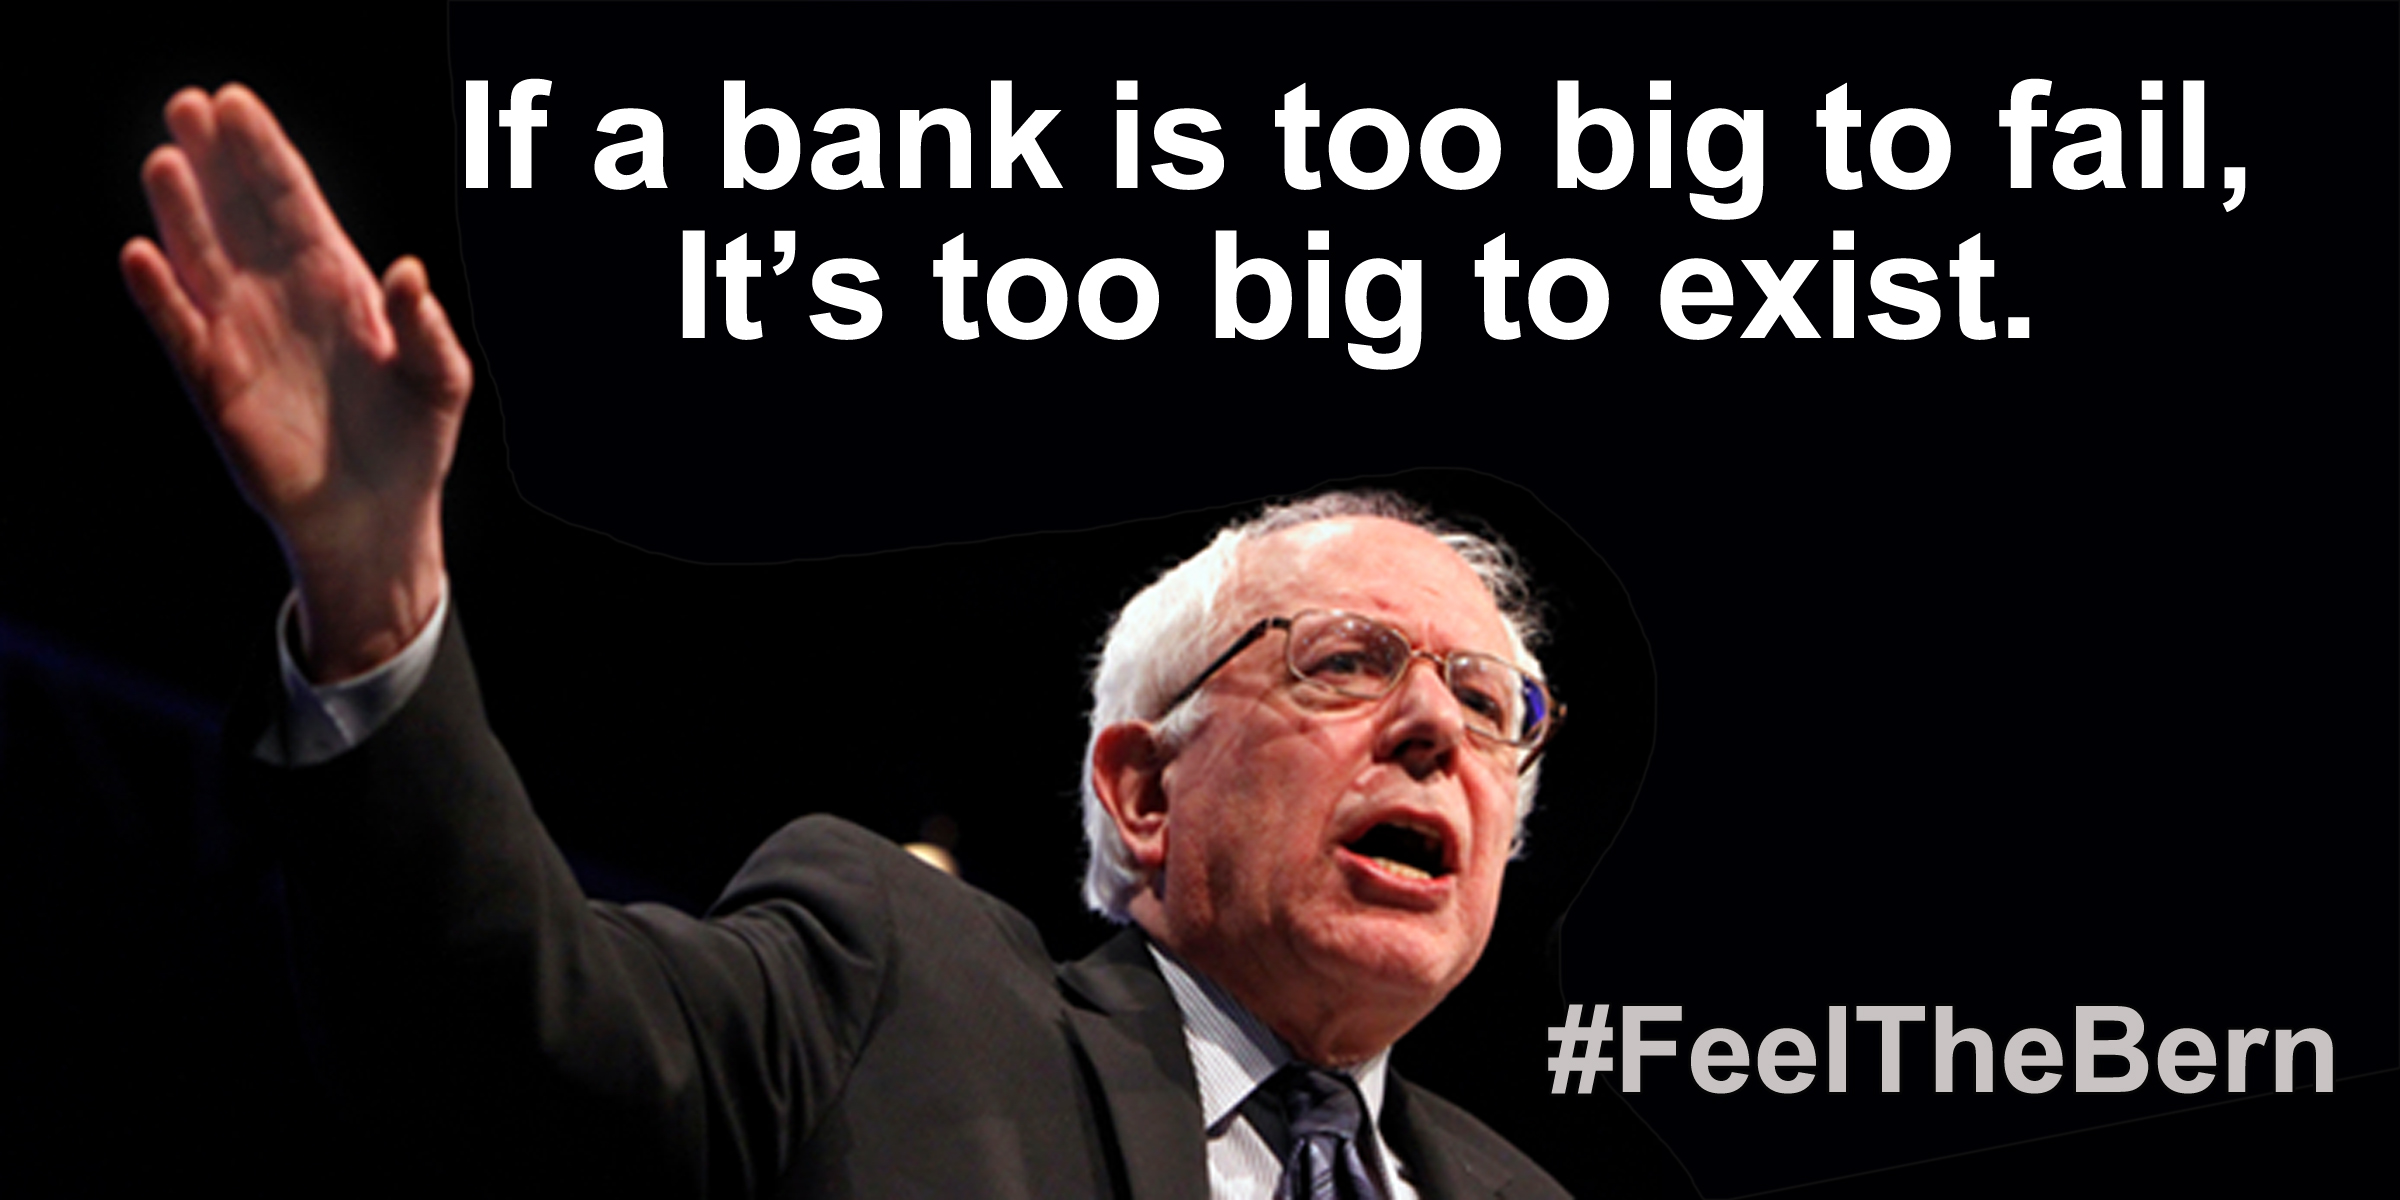 Bernie Sanders Quotes Better World Quotes  Bernie Sanders On Banks